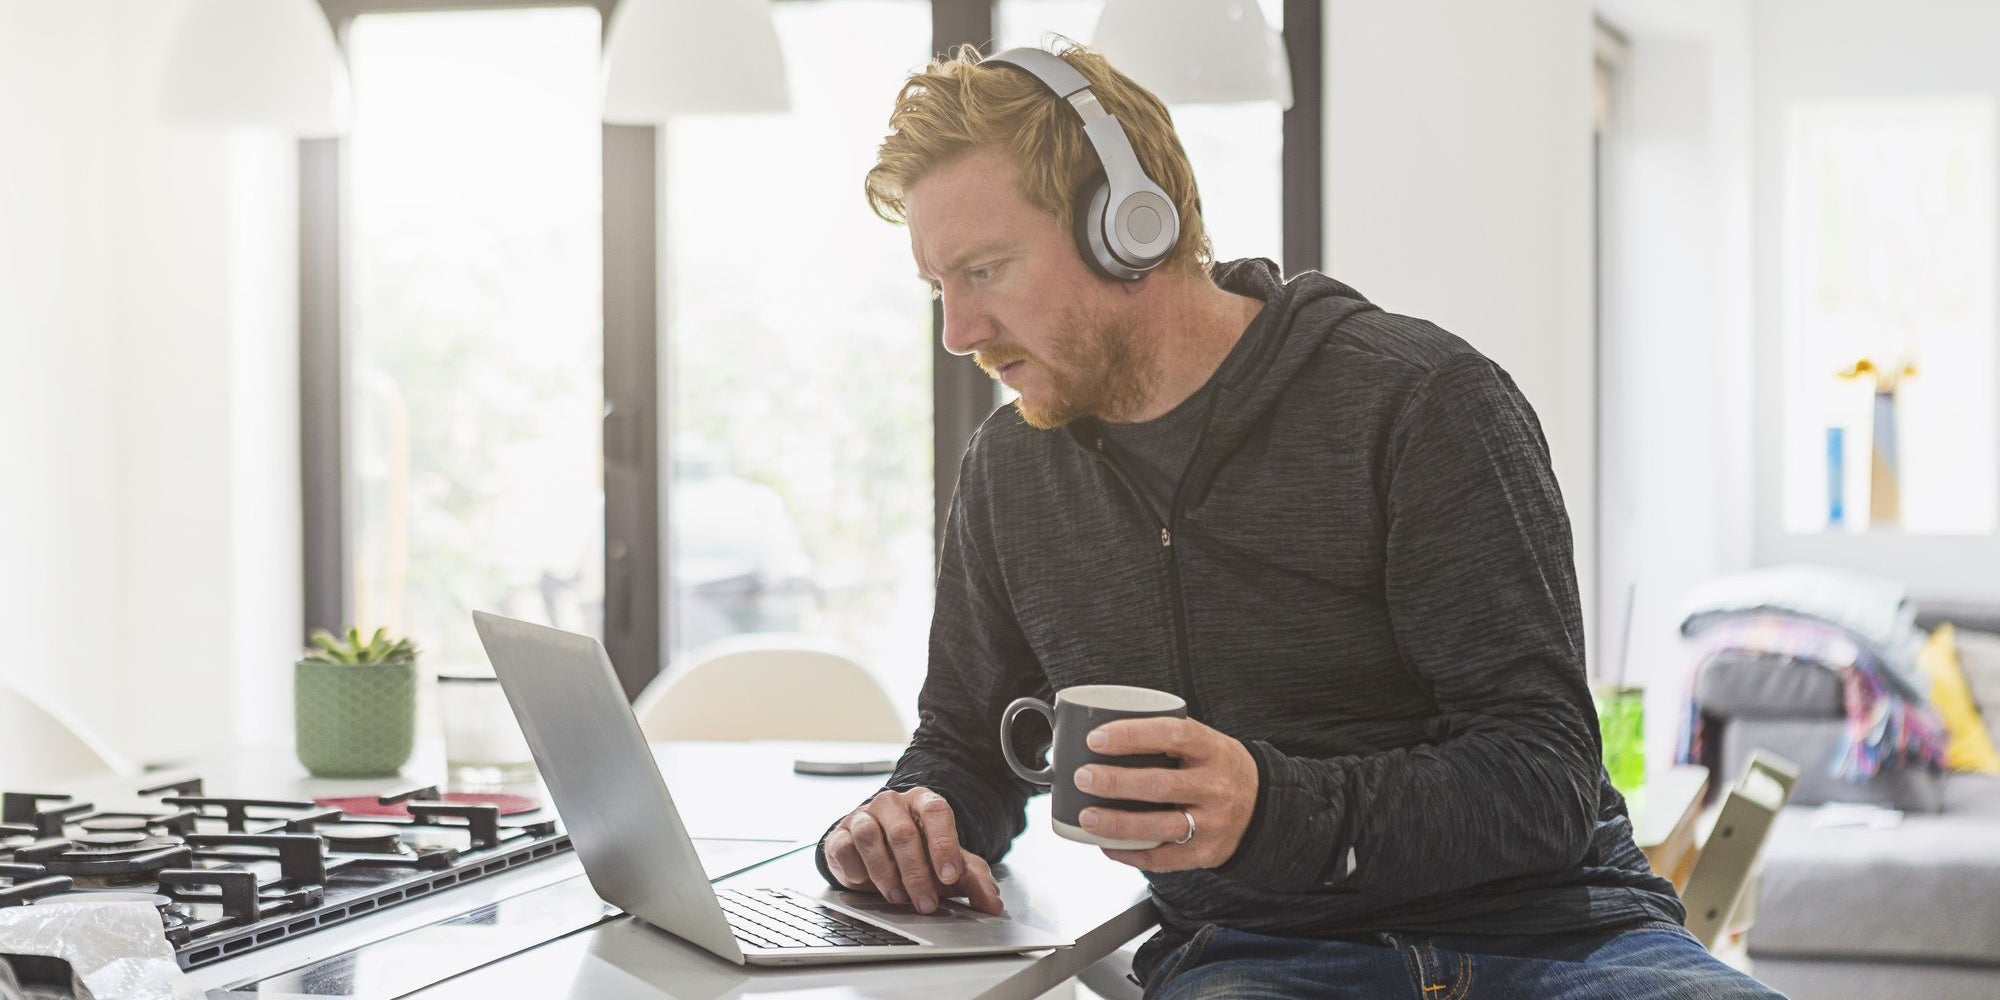 15 Free Online Business Courses You Can Take From Harvard, Yale, MIT and Other Amazing Schools